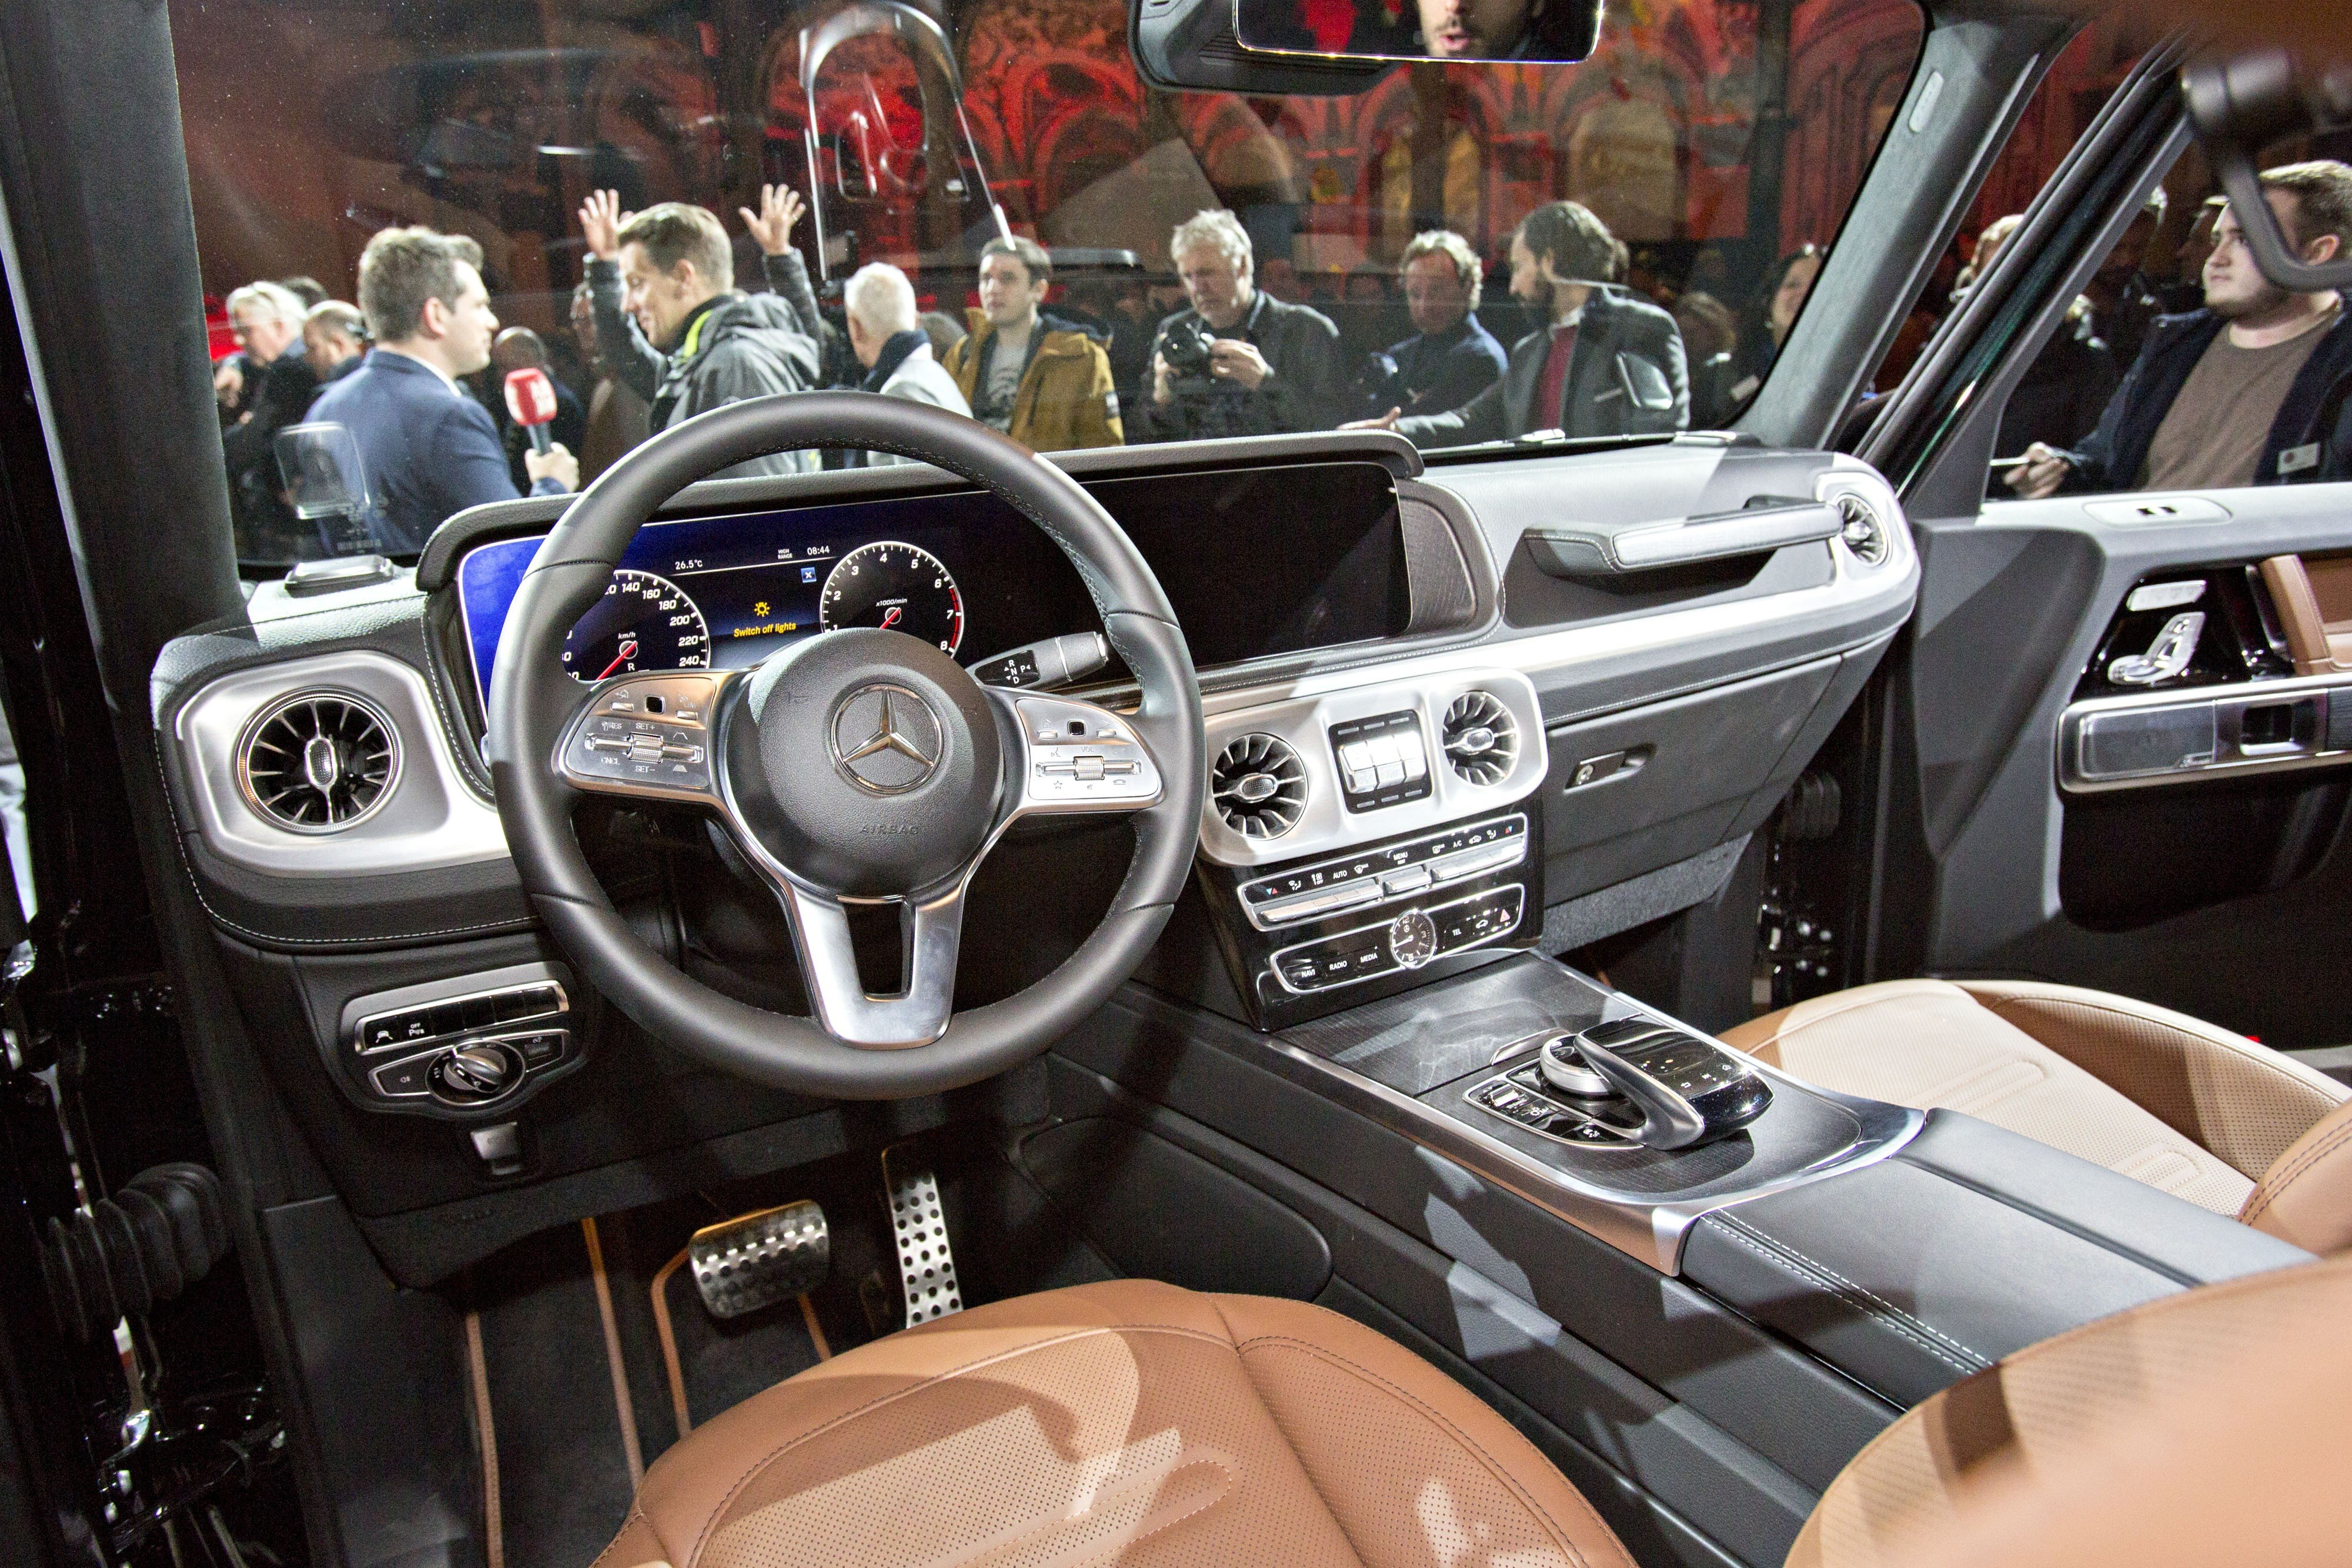 Mercedes Benz G Wagen Gets Its First Revamp Since 1979 Style